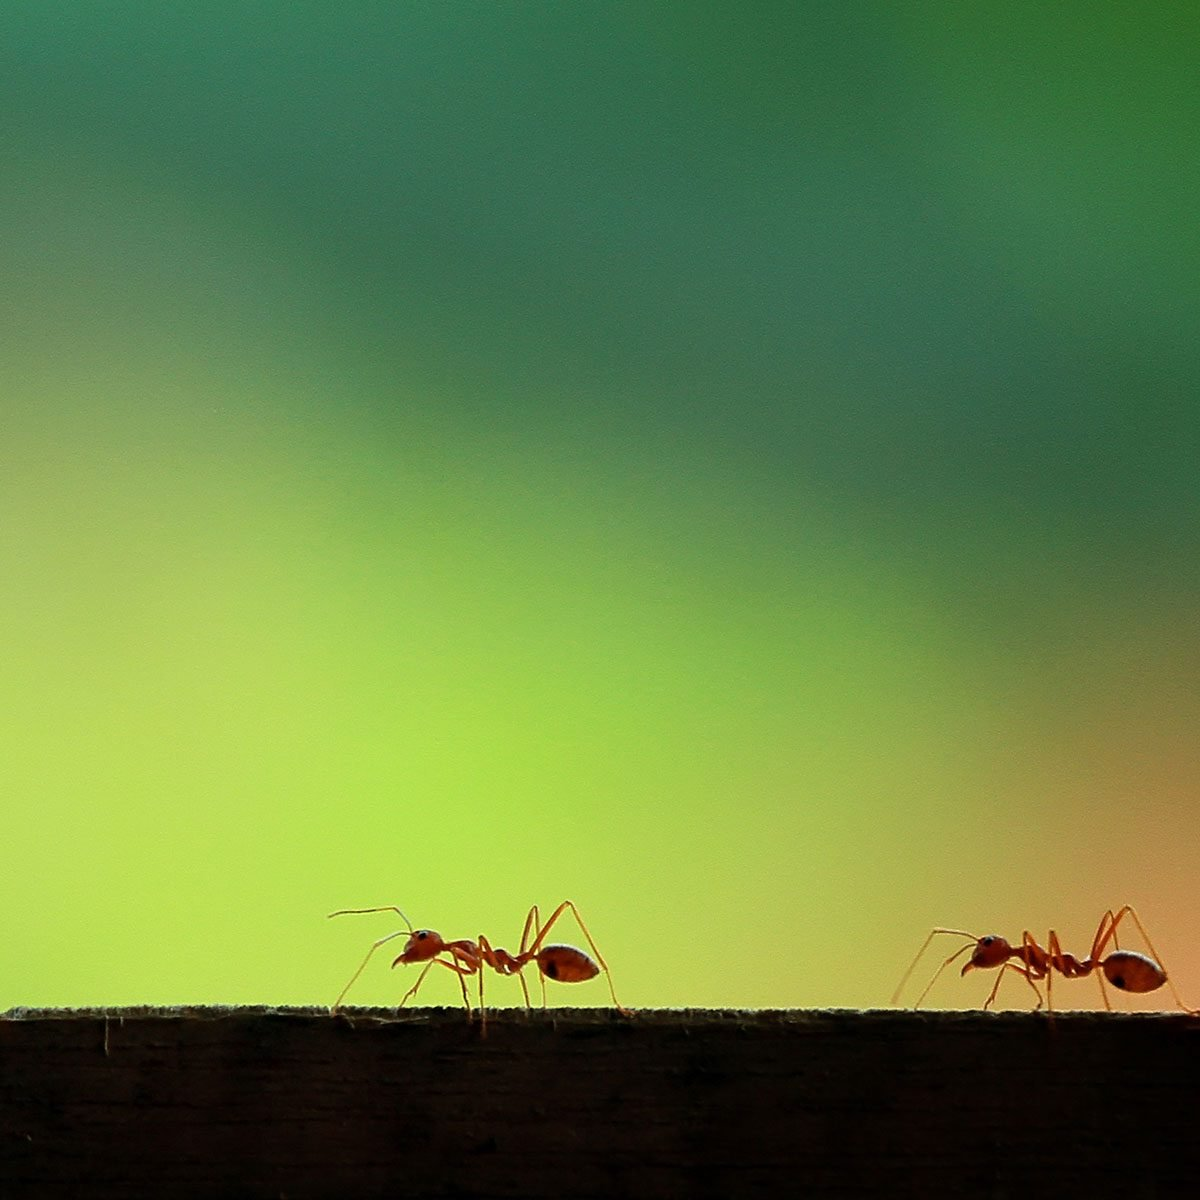 11 Interesting Facts About Ants